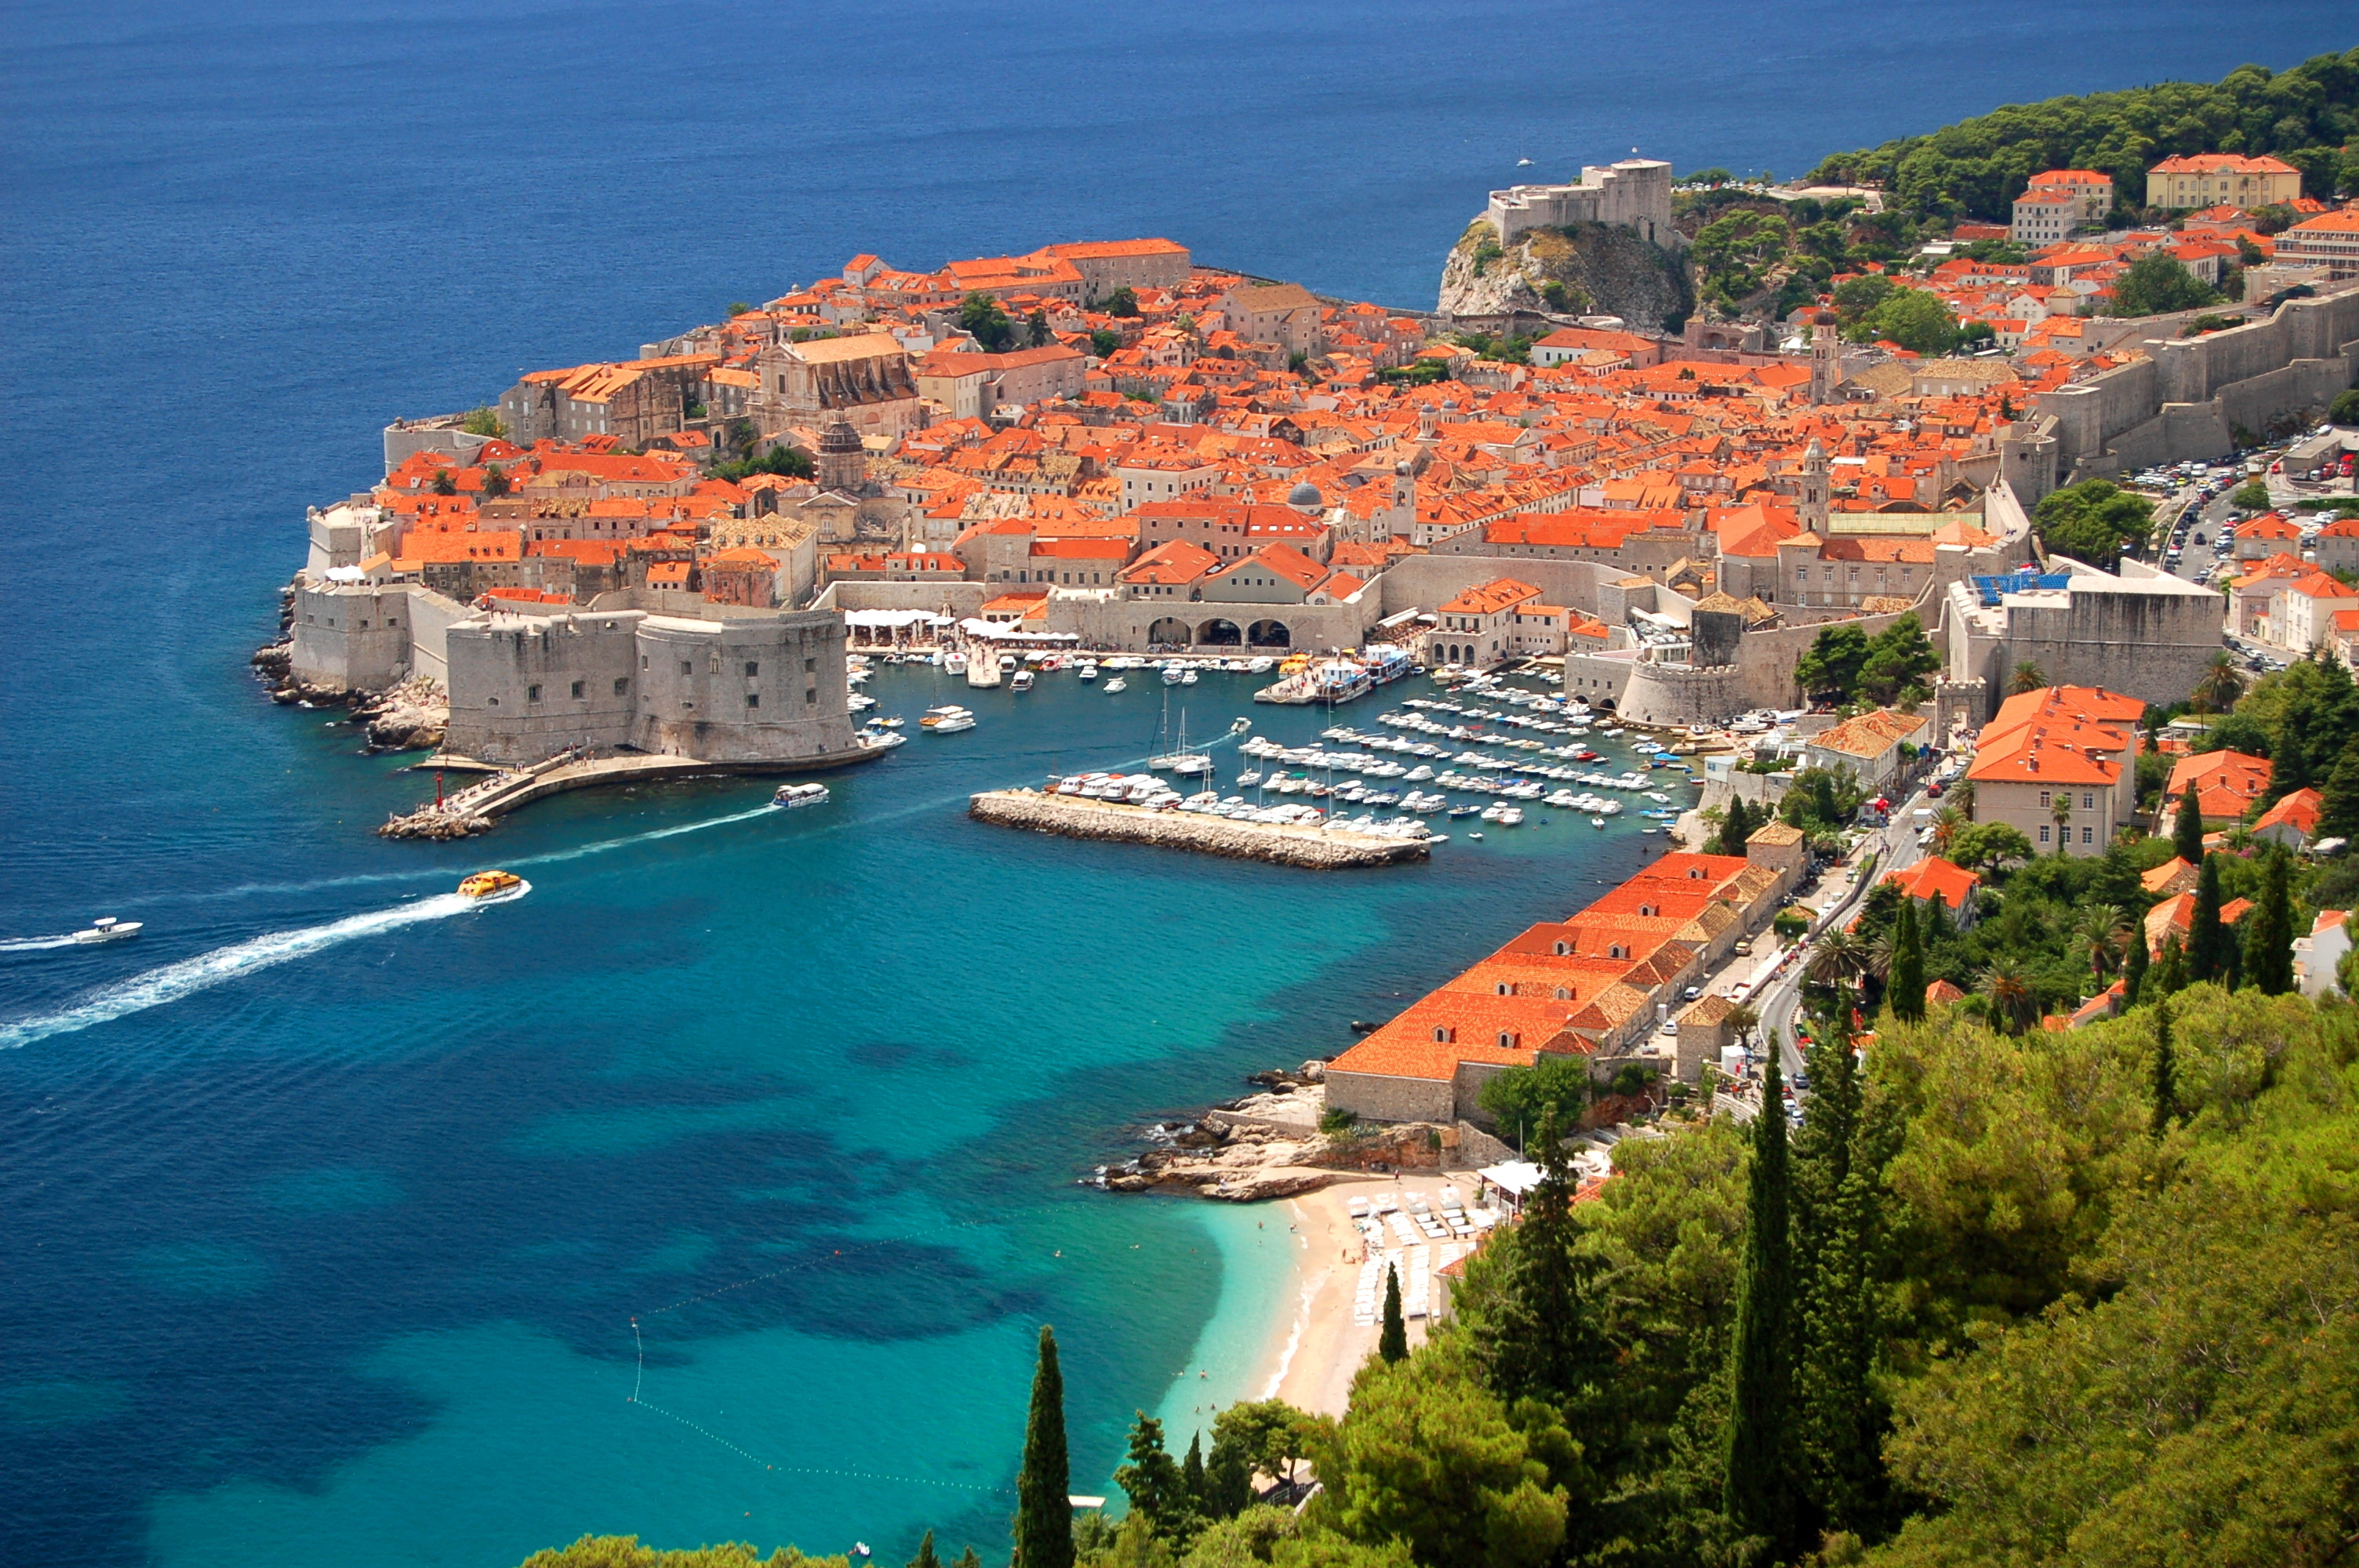 Discover dubrovnik old town guided walking tour - Dubrovnik Croatia